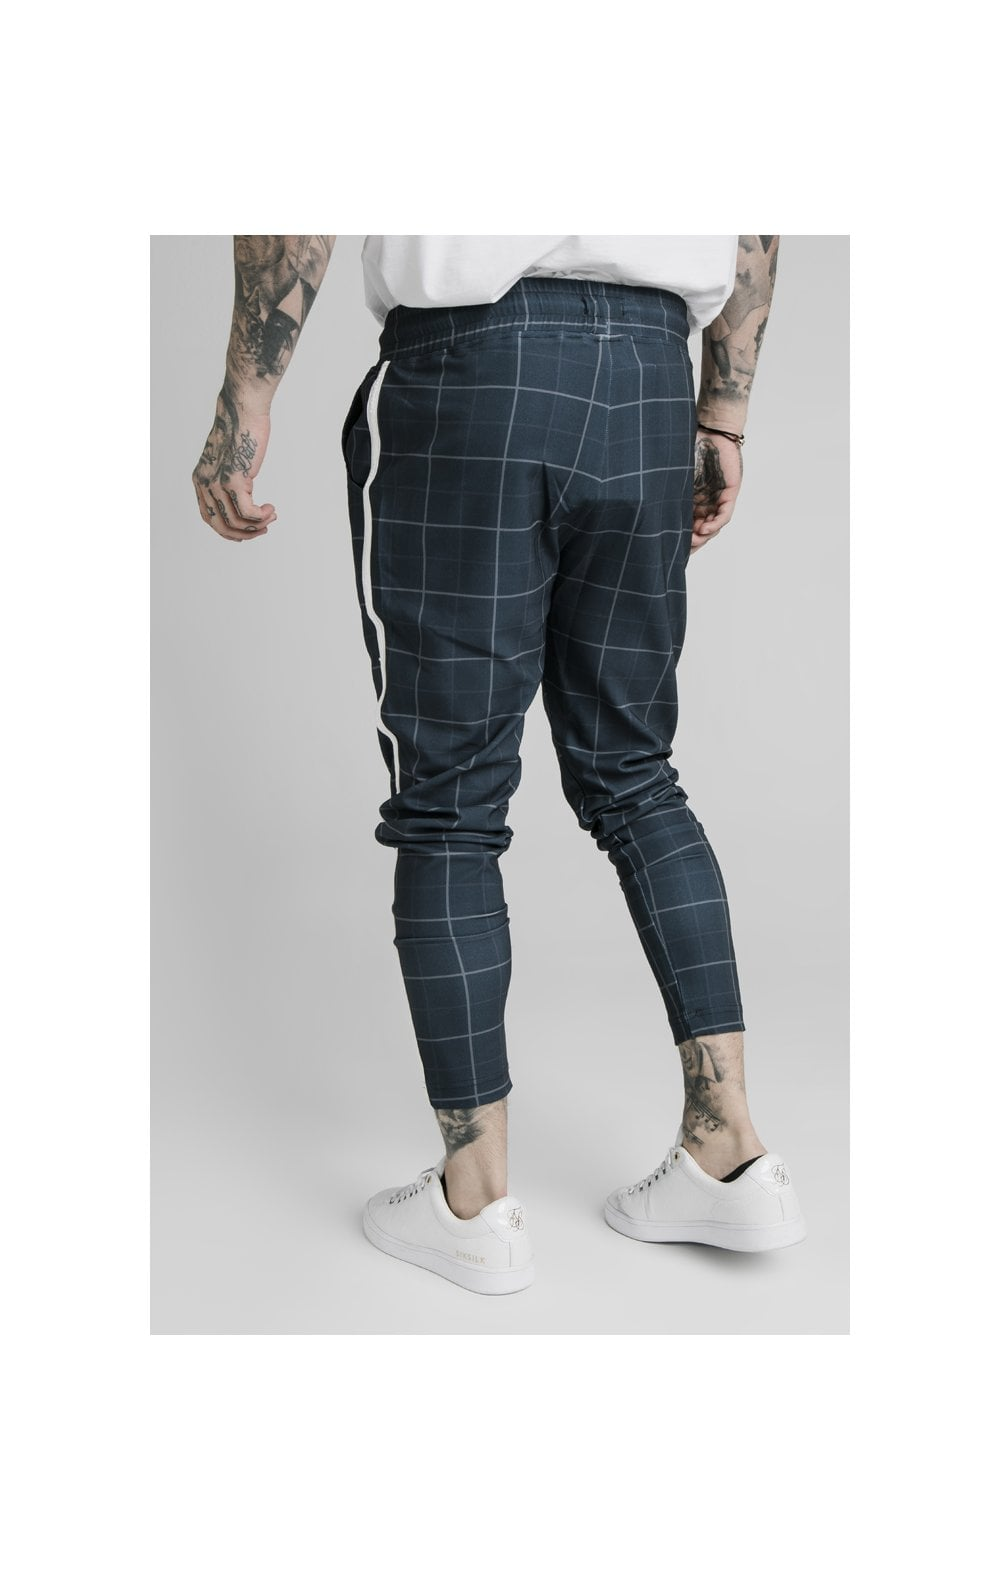 SikSilk Smart Fitted Tape Pants - Navy (5)